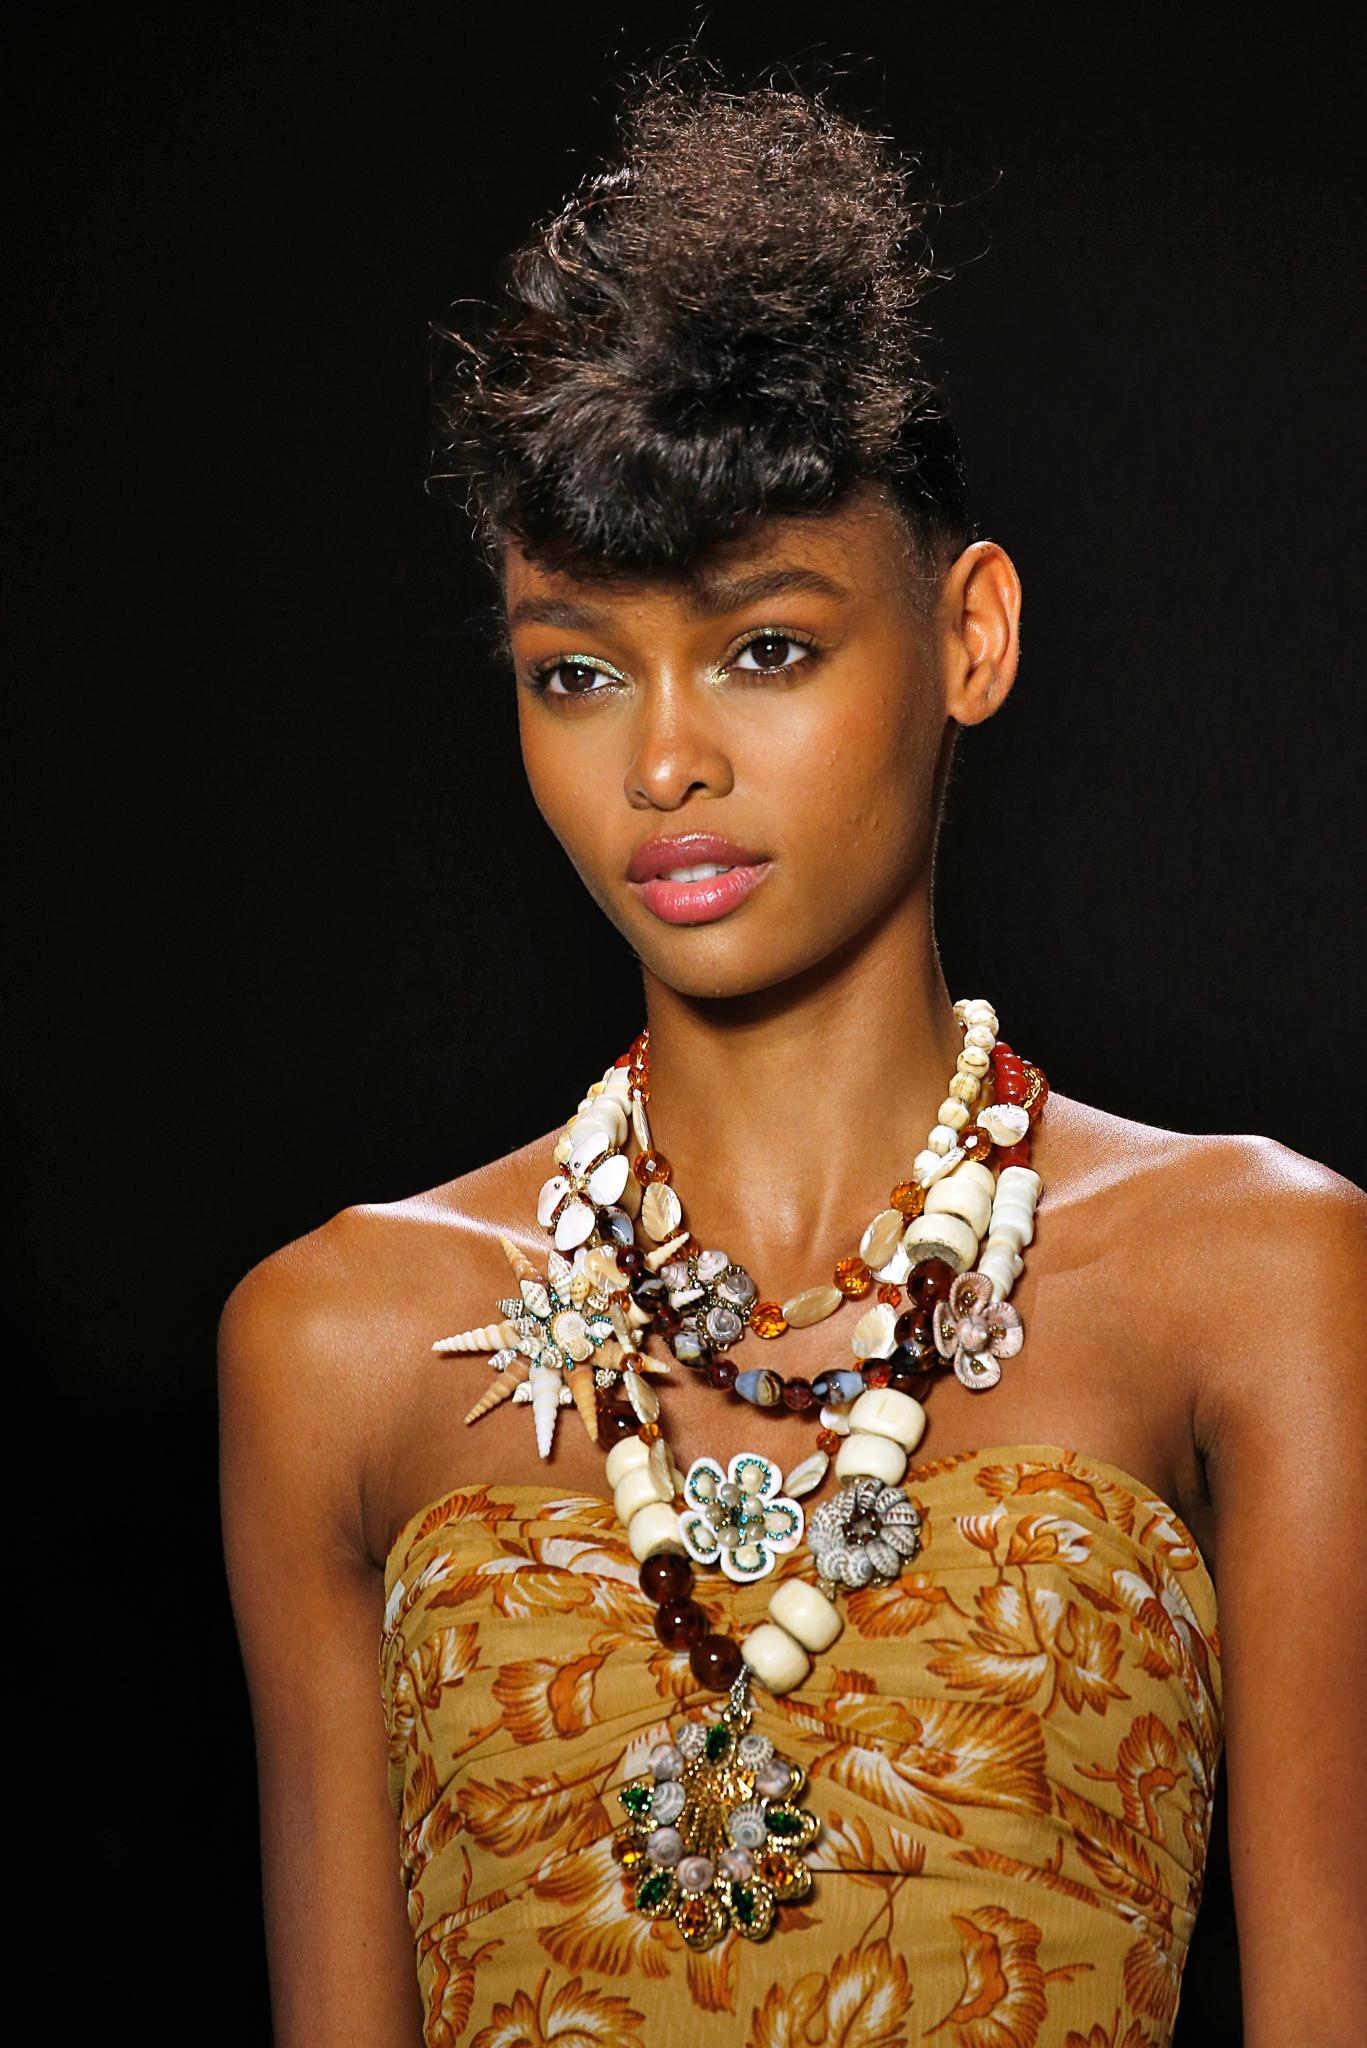 NYFW SS19: Close up shot of a model with dark brown relaxed hair styled into a '50s-inspired retro updo, wearing beaded necklaces and brown sweetheart dress on the Anna Sui runway